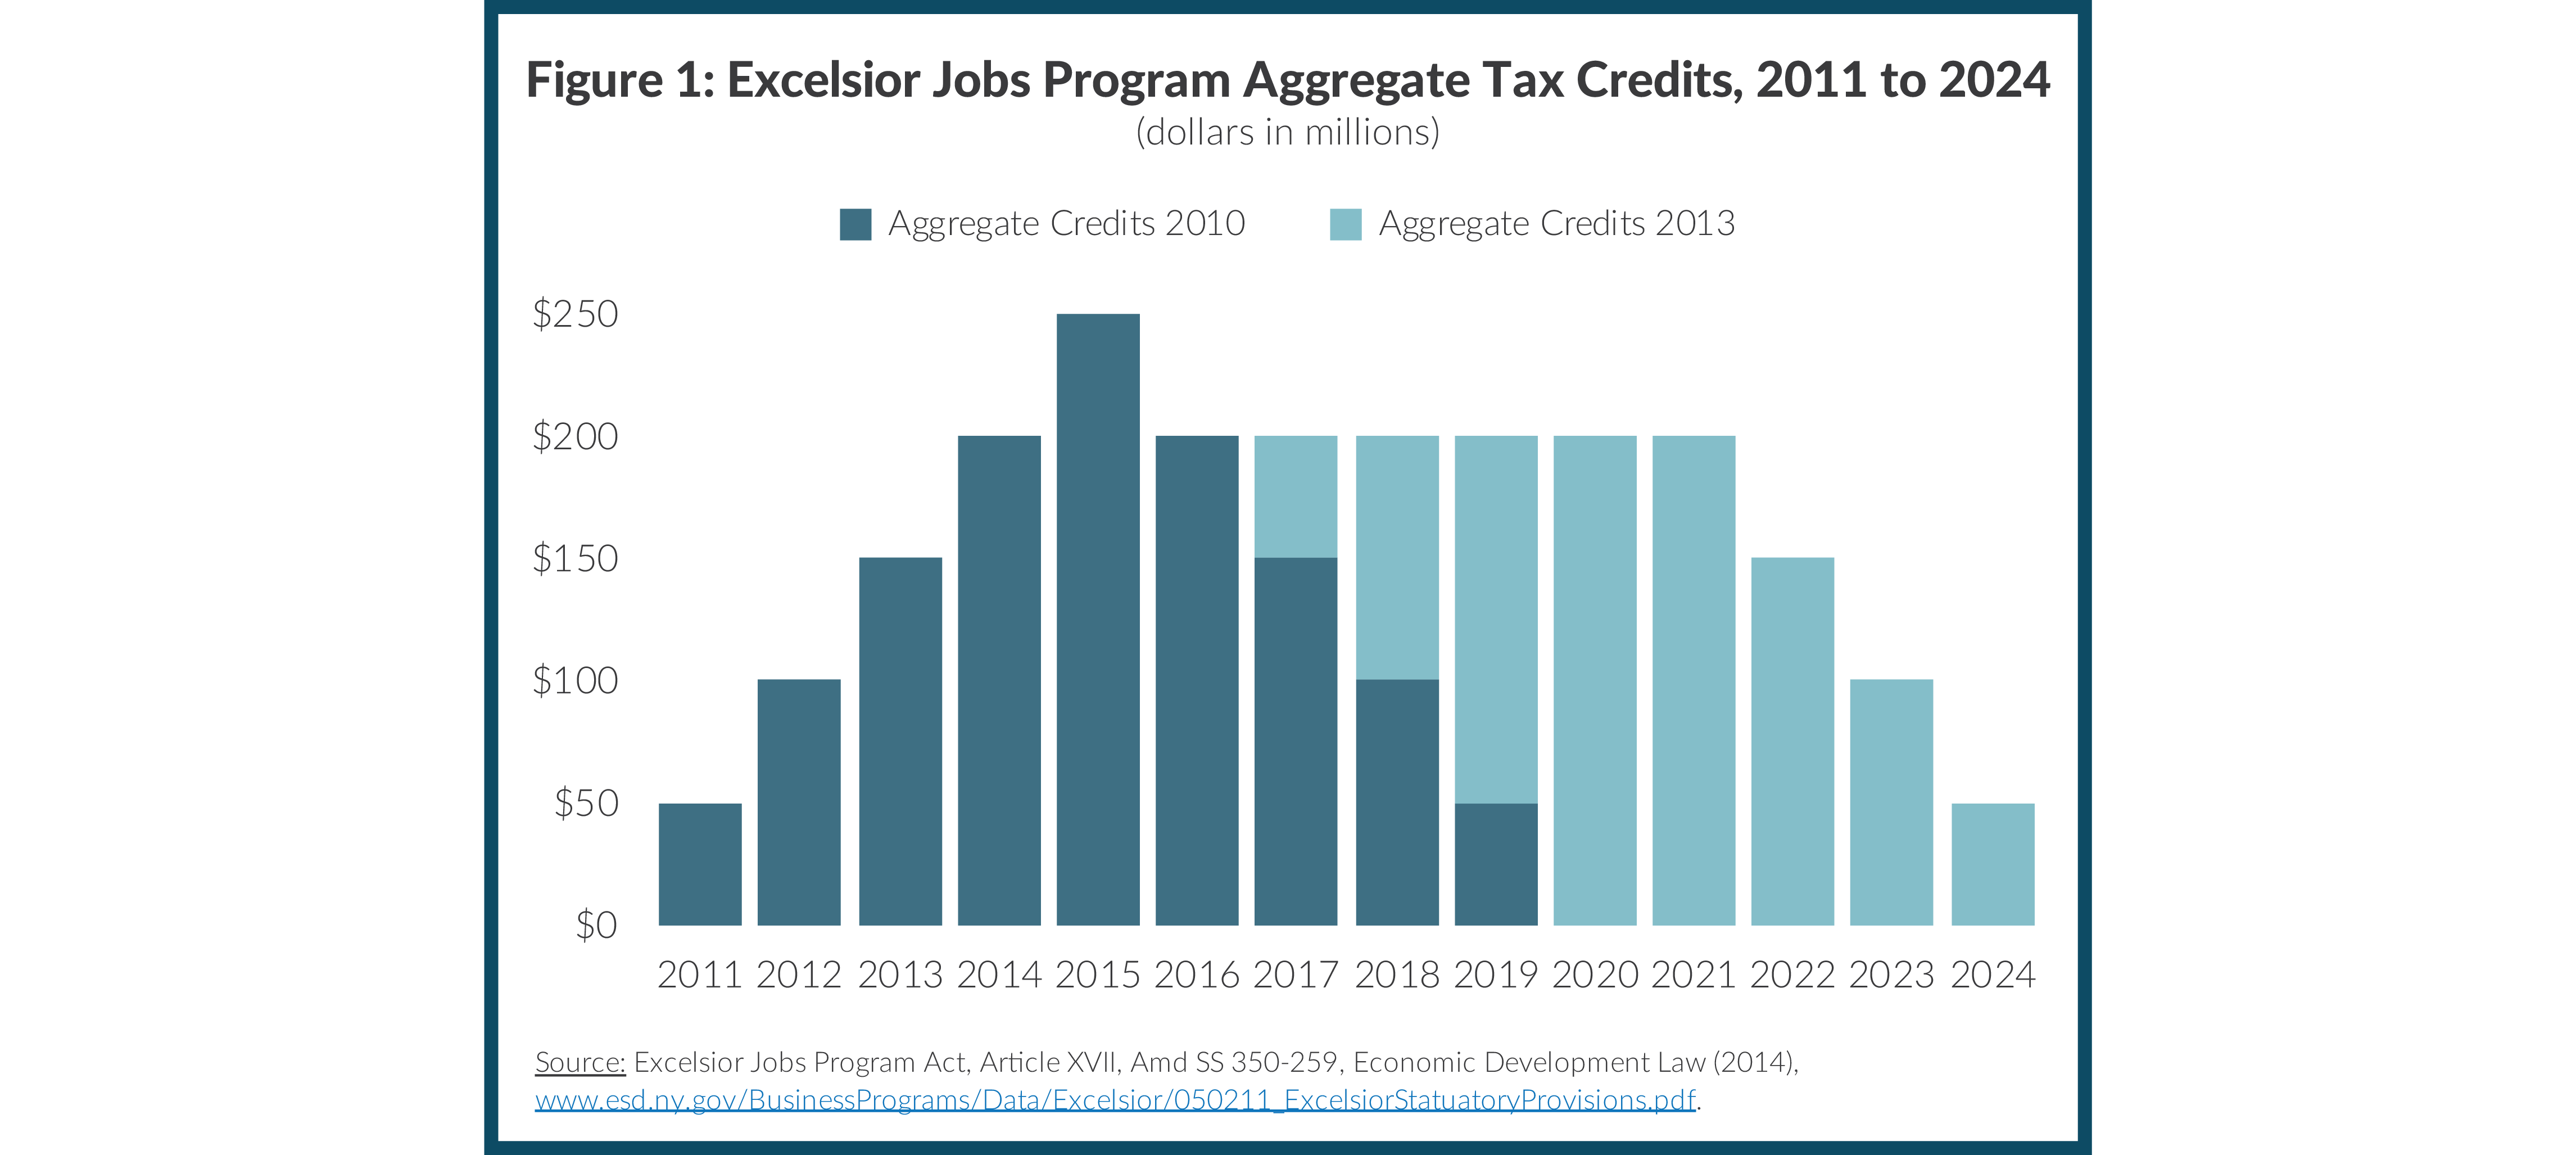 Figure 1: Excelsior Jobs Program Aggregate Tax Credits, 2011 to 2024